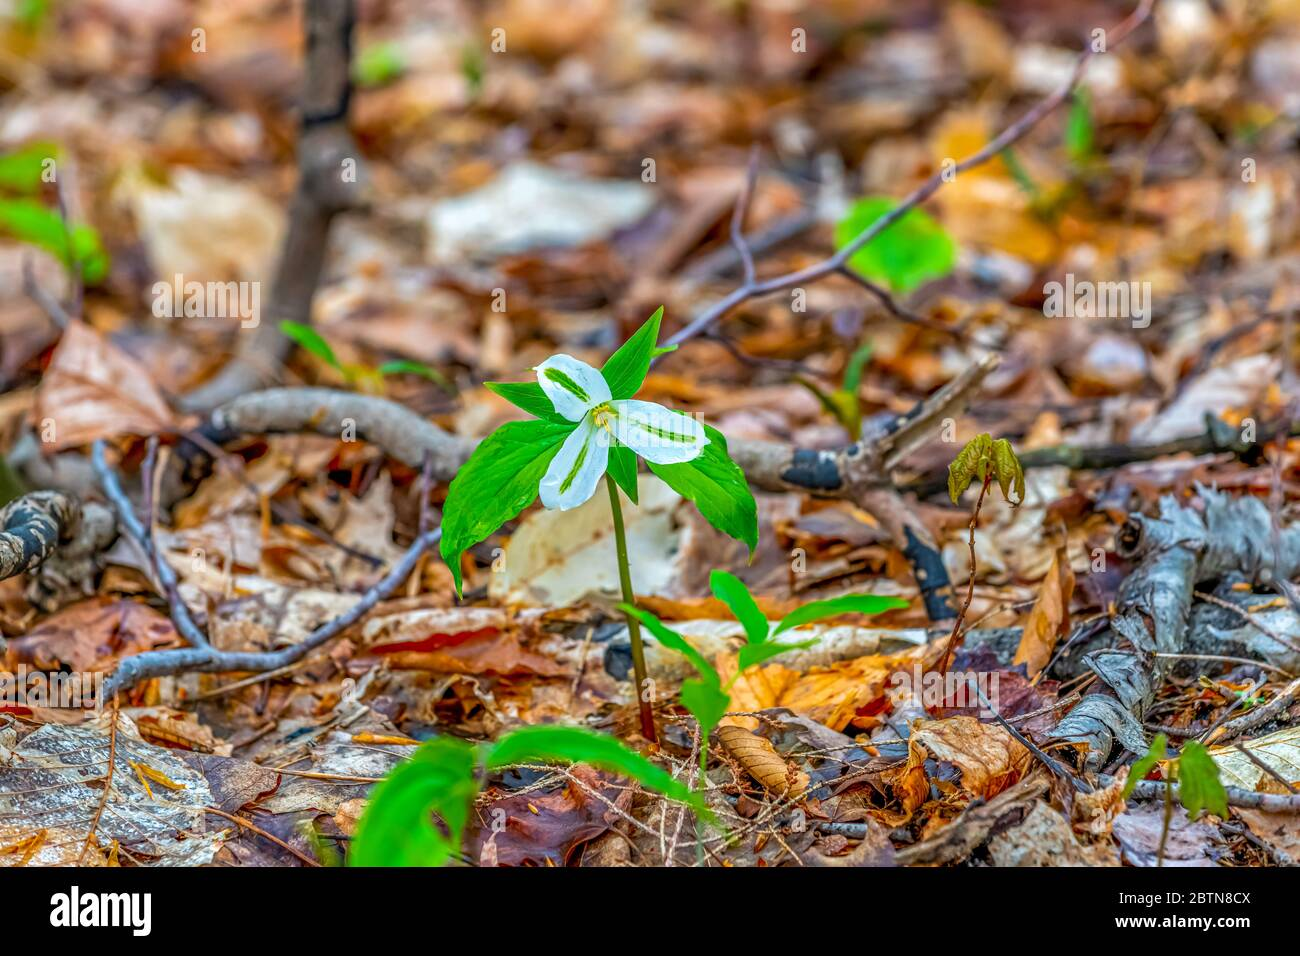 A white flower of a trillium (Trillium grandiflorum) blooming in the spring on Old Mission Peninsula, Traverse City, Michigan, USA. Stock Photo